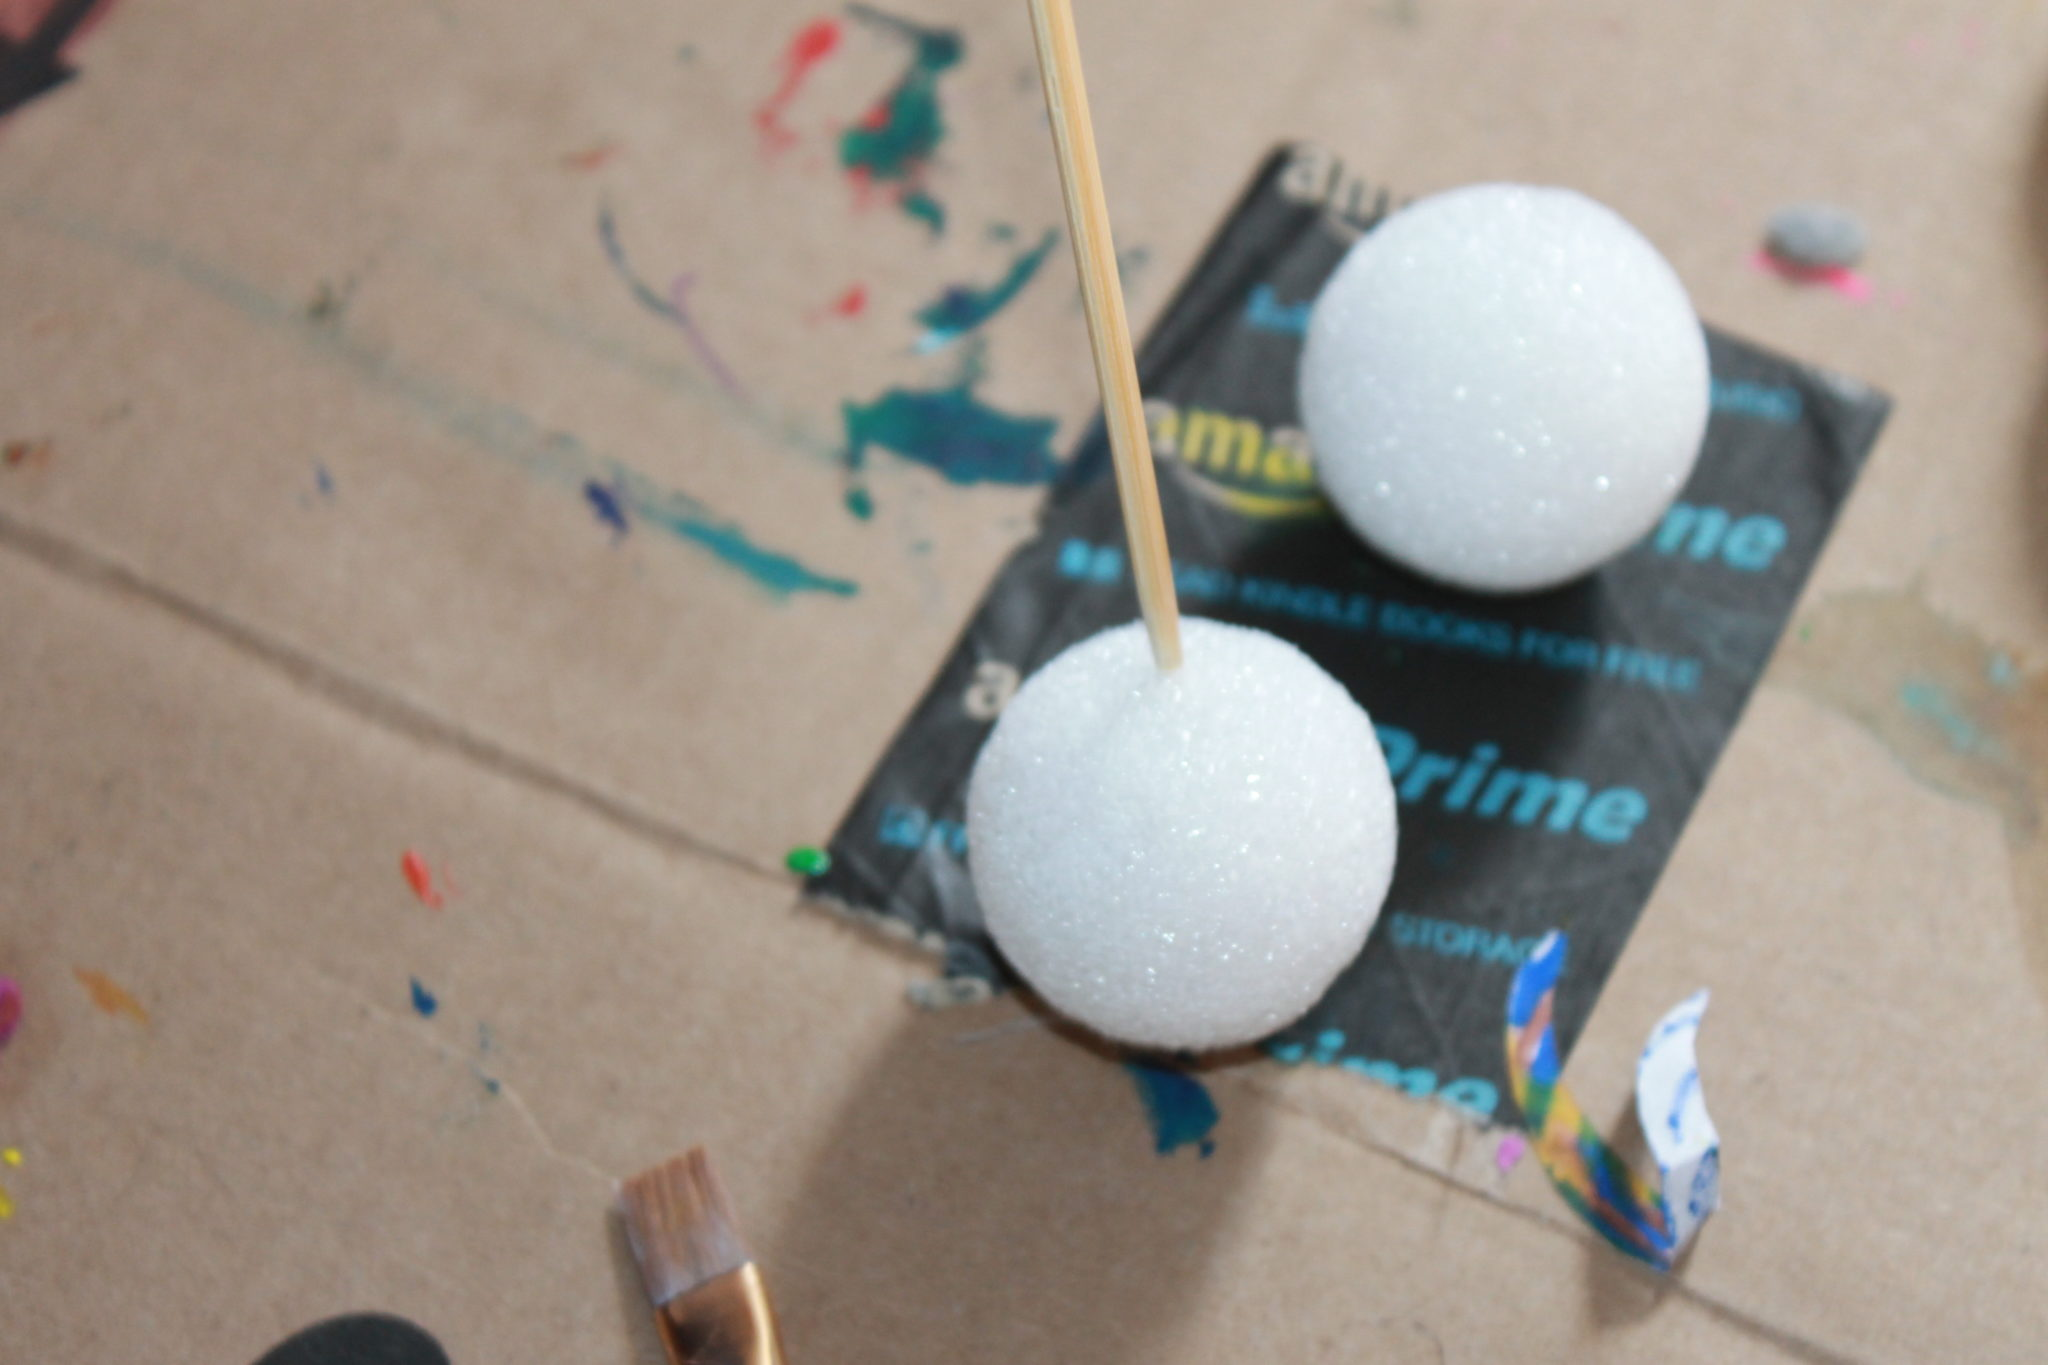 Hold on to the skewer & use acrylic paints to paint around each ball.